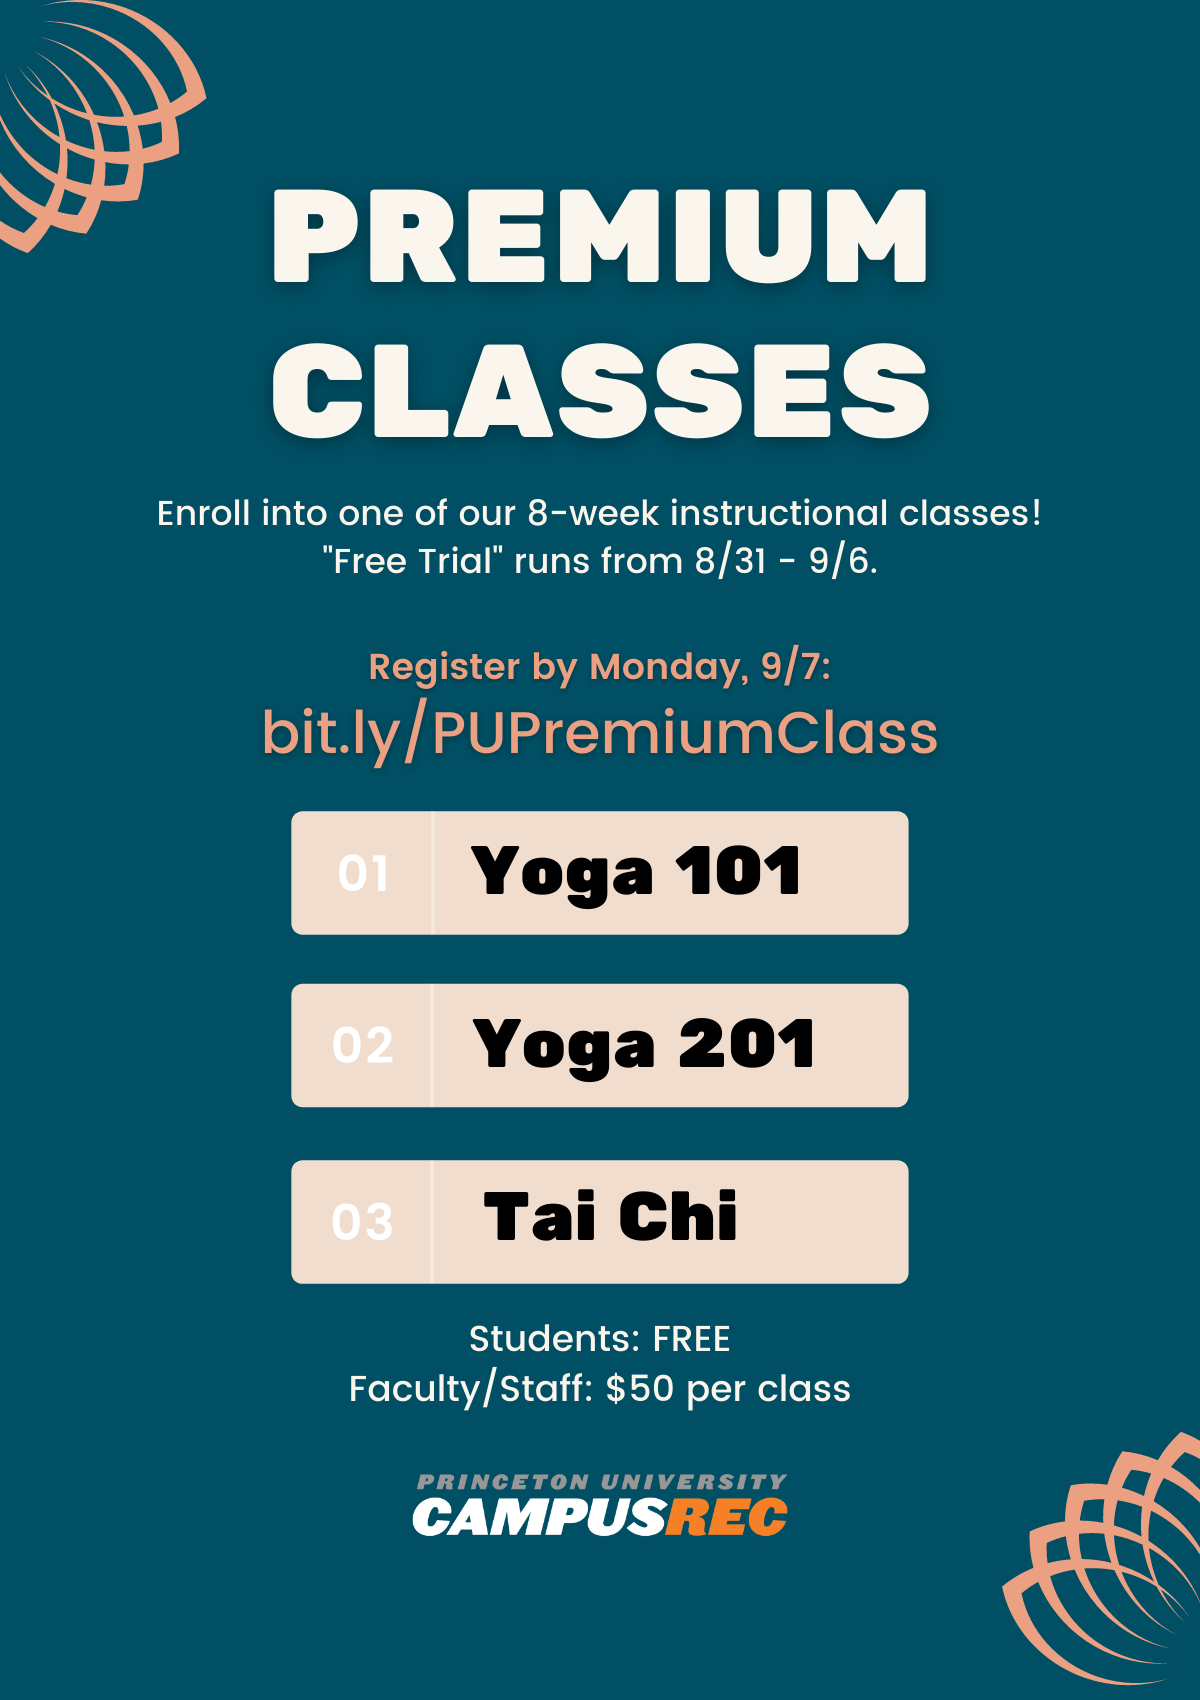 Poster with teal background for Premium Classes: enroll into one of our 8-week instructional classes! Free trial runs from 8/31 - 9/6. Register by Monday, 9/7: bit.ly/PUPremiumClass. Yoga 101, Yoga 201, Tai Chi. Students: FREE. Faculty/Staff: $50 per class